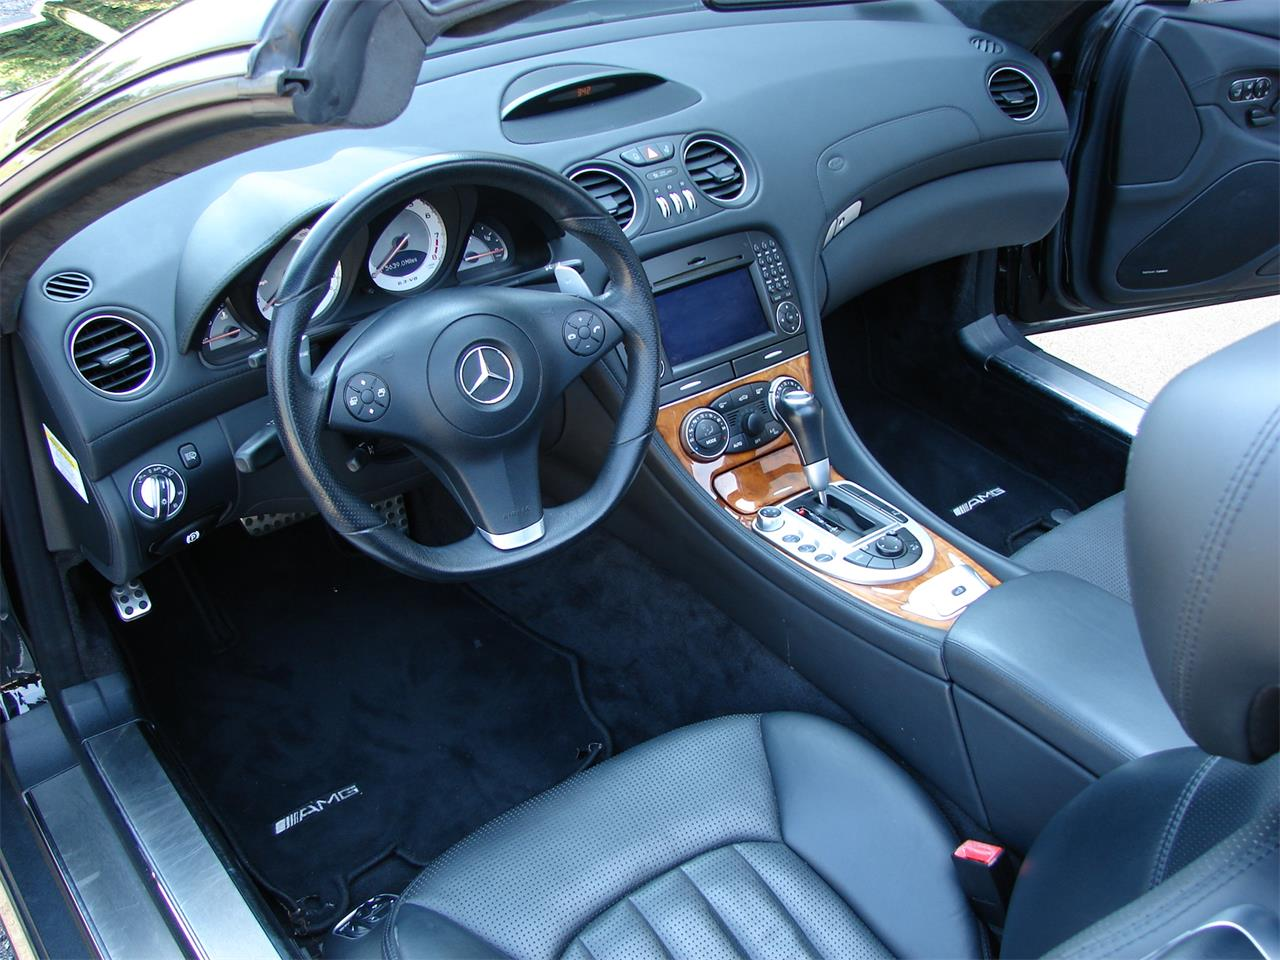 2009 Mercedes-Benz SL-Class (CC-1134981) for sale in Washington, Missouri